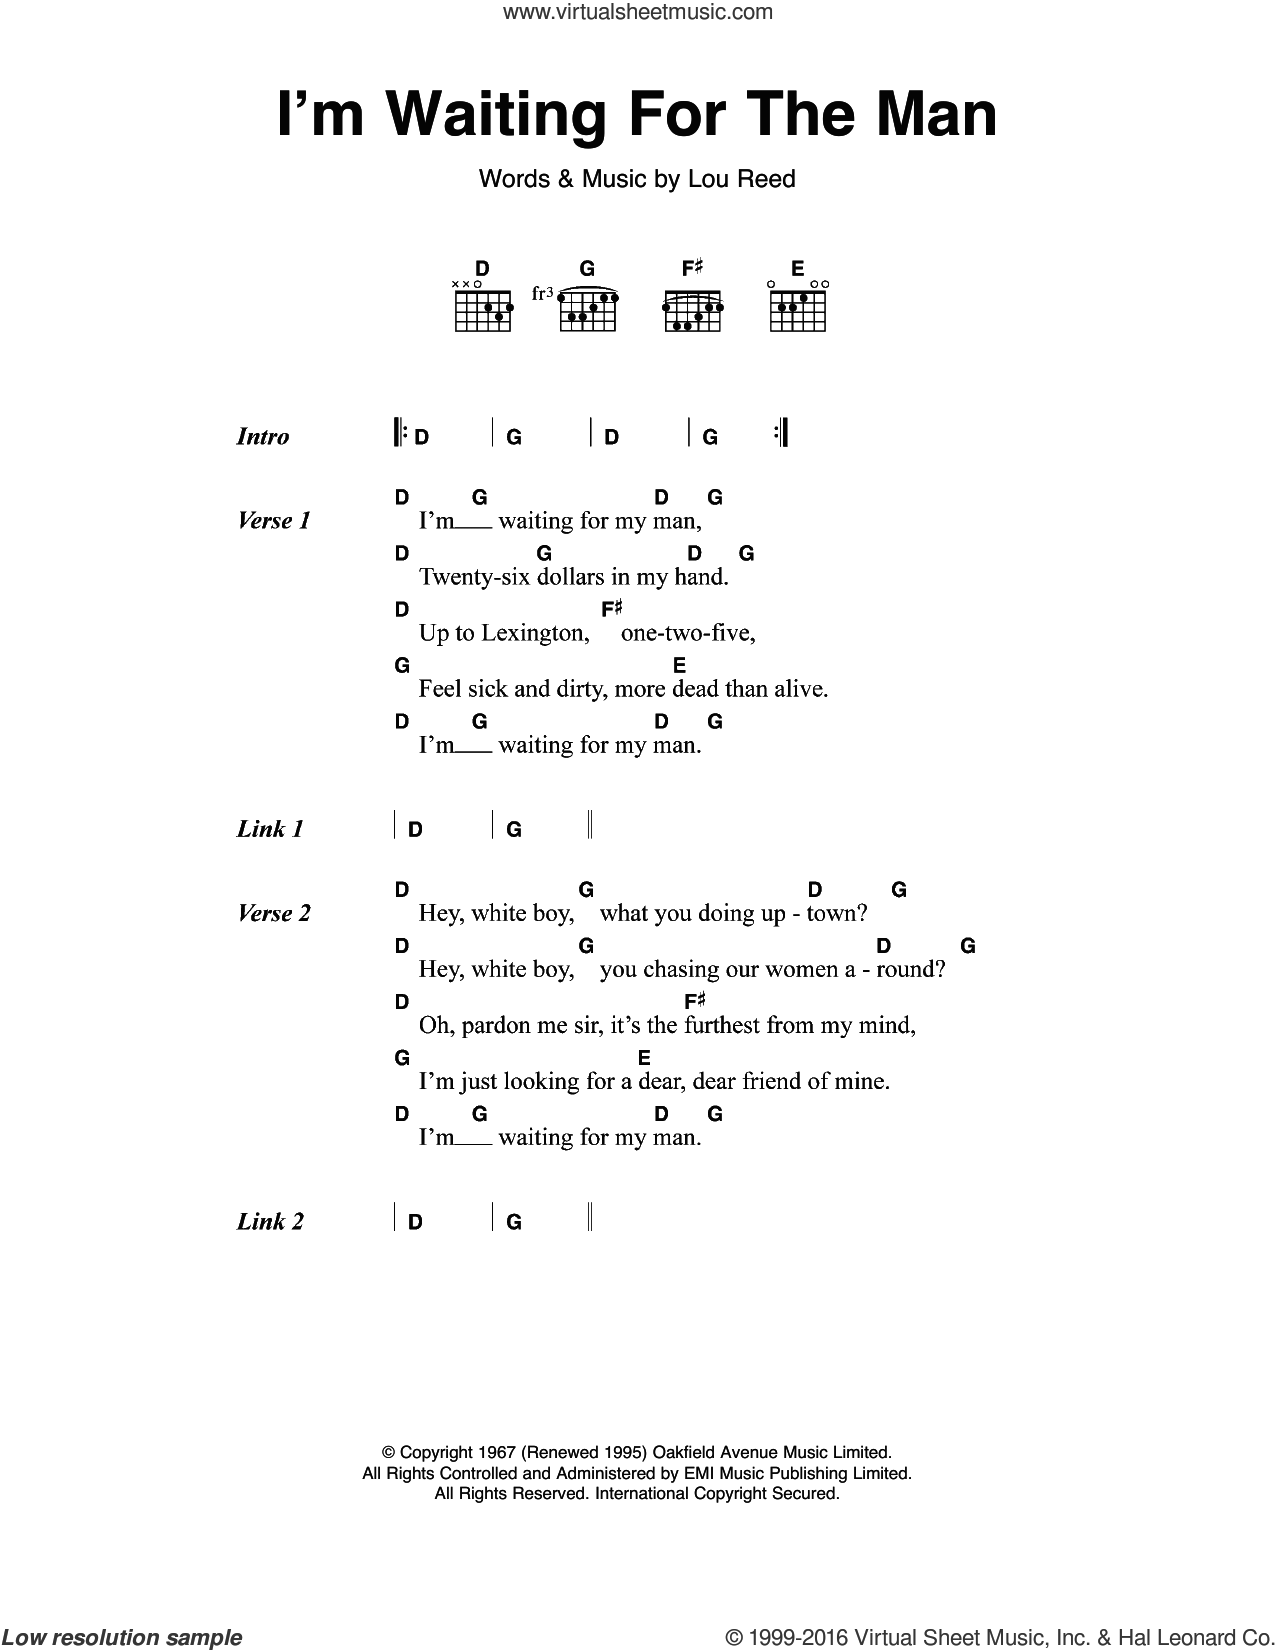 I'm Waiting For The Man (Waiting For My Man) sheet music for guitar (chords) by The Velvet Underground and Lou Reed, intermediate skill level